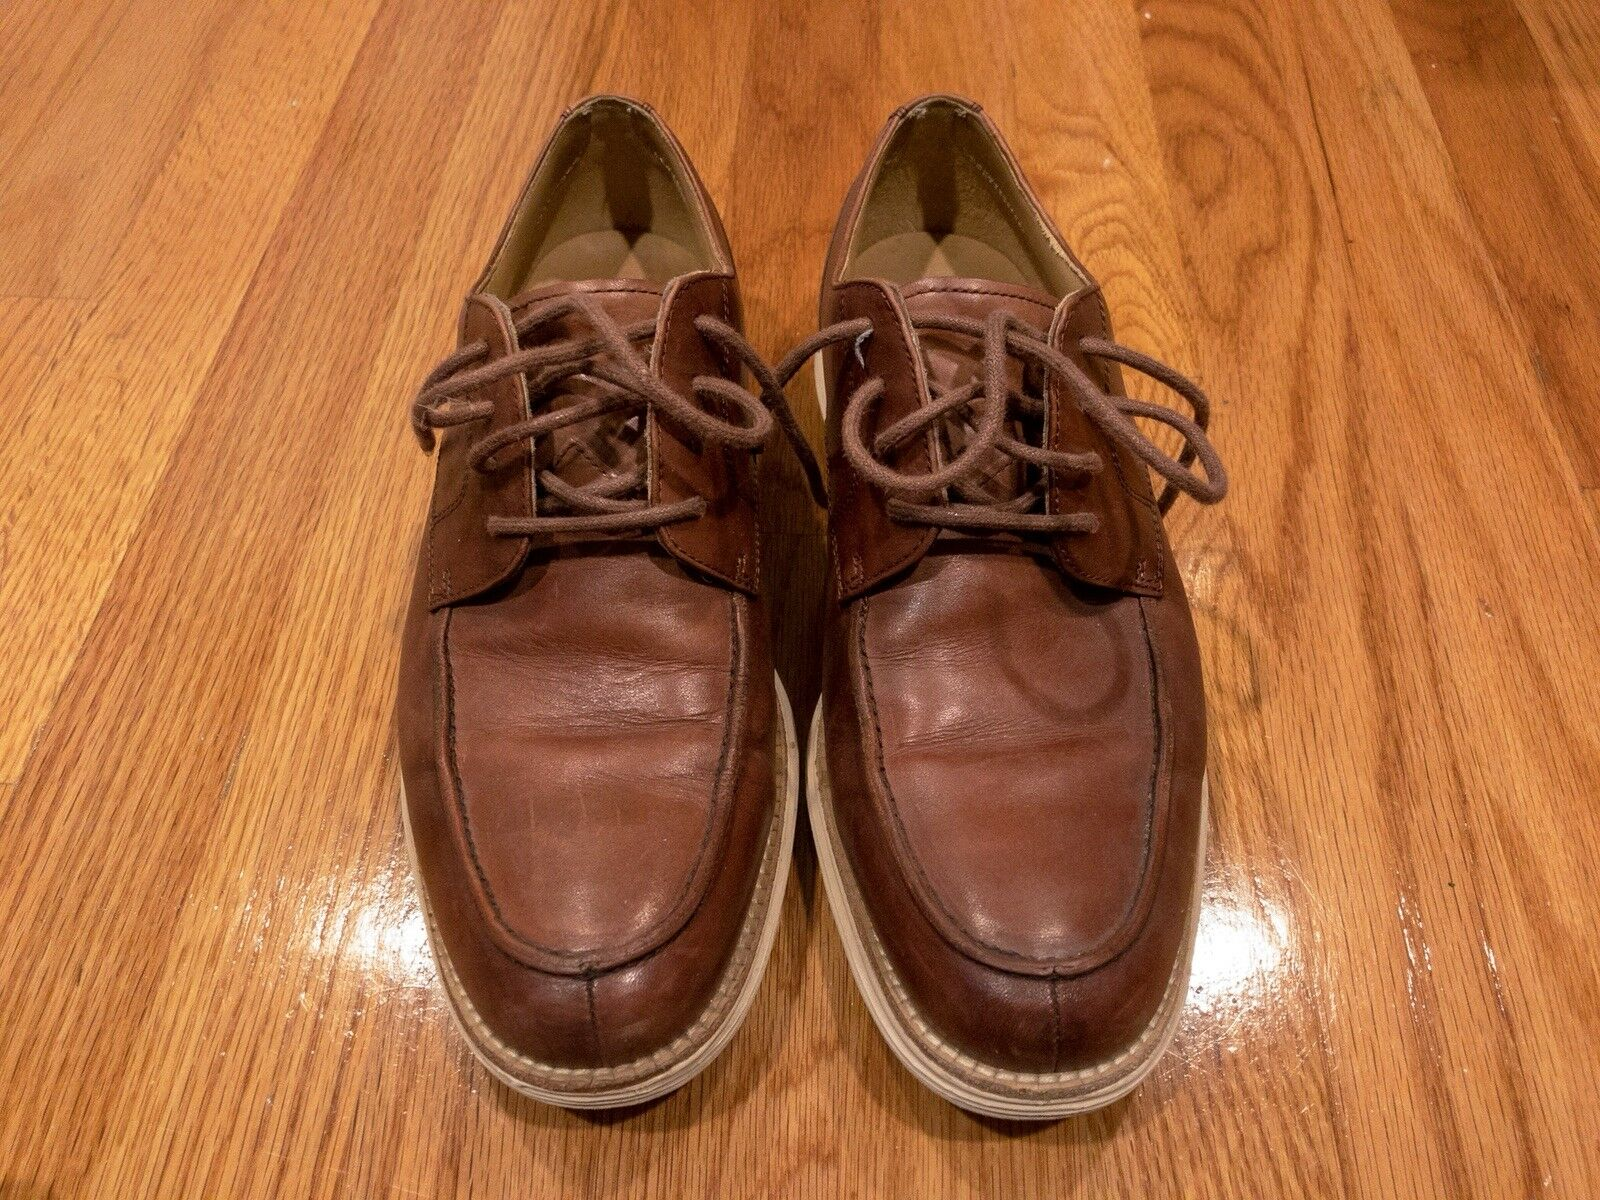 Cole Haan Lunargrand Oxford Shoes Brown Pelle Uomo's 8